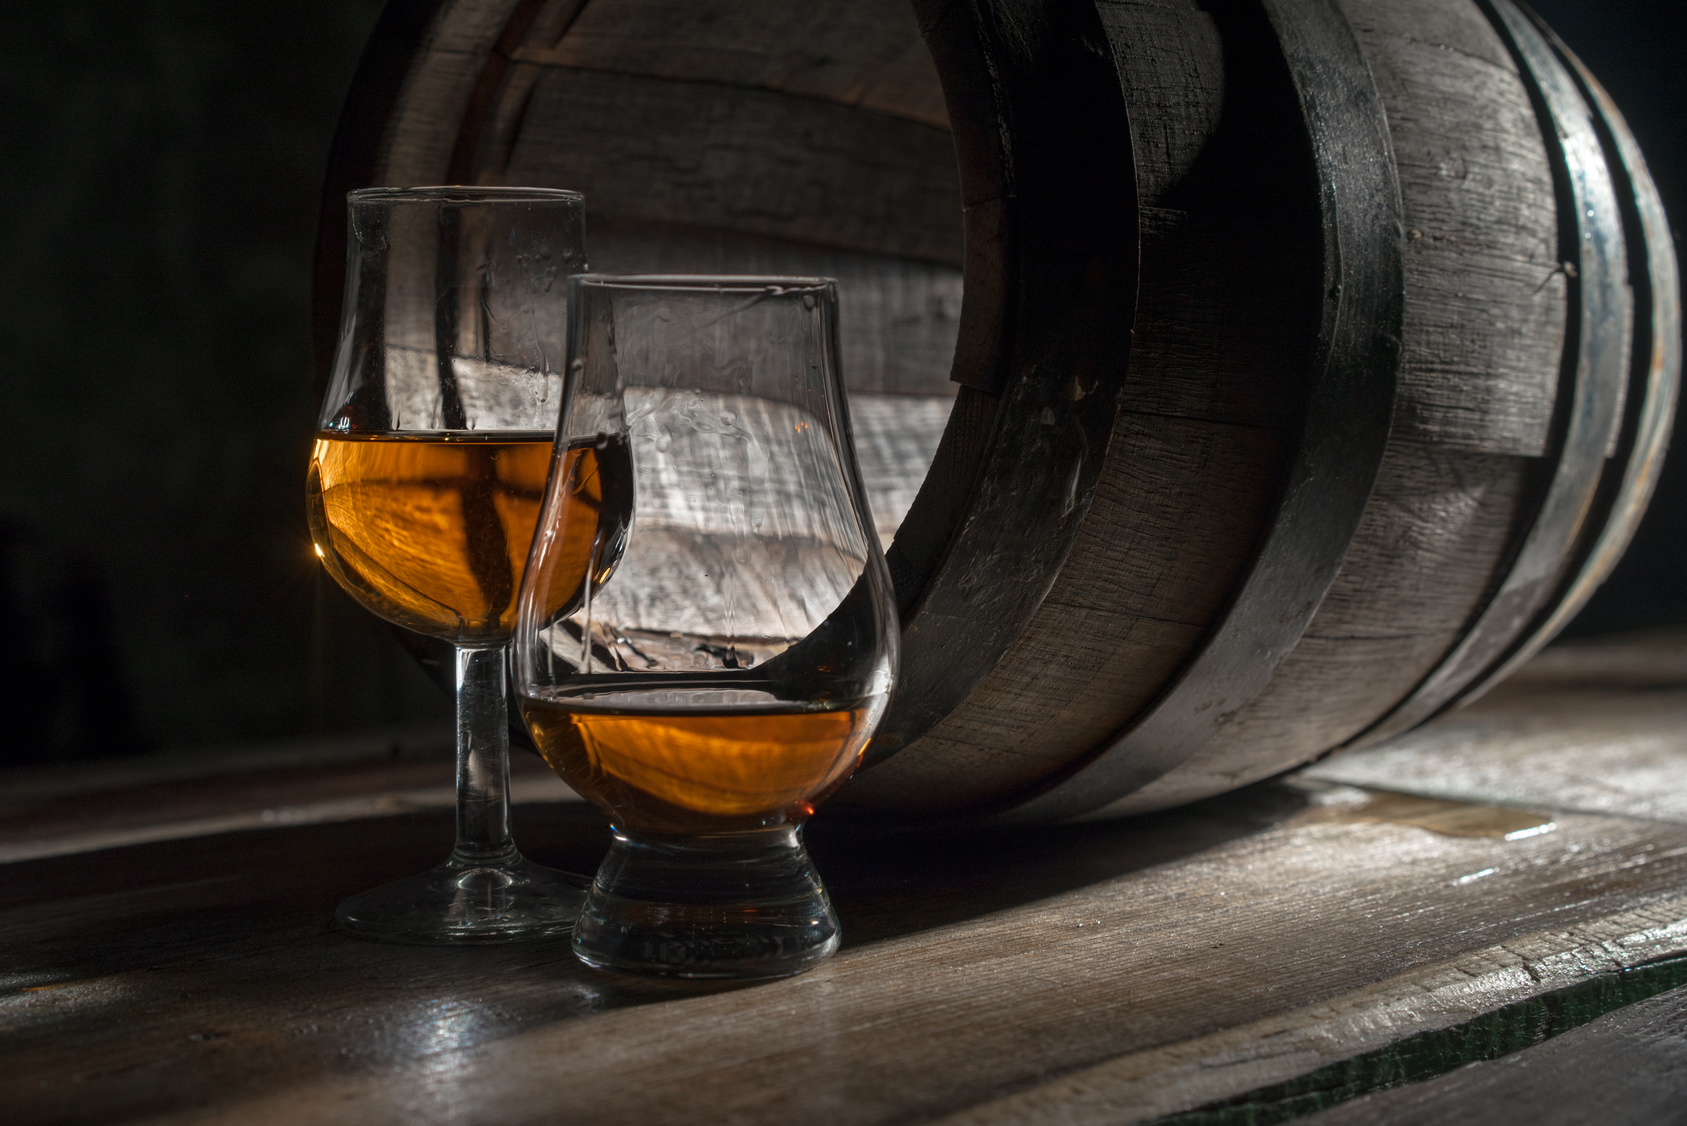 Two glasses of strong alcohol, amid oak barrels